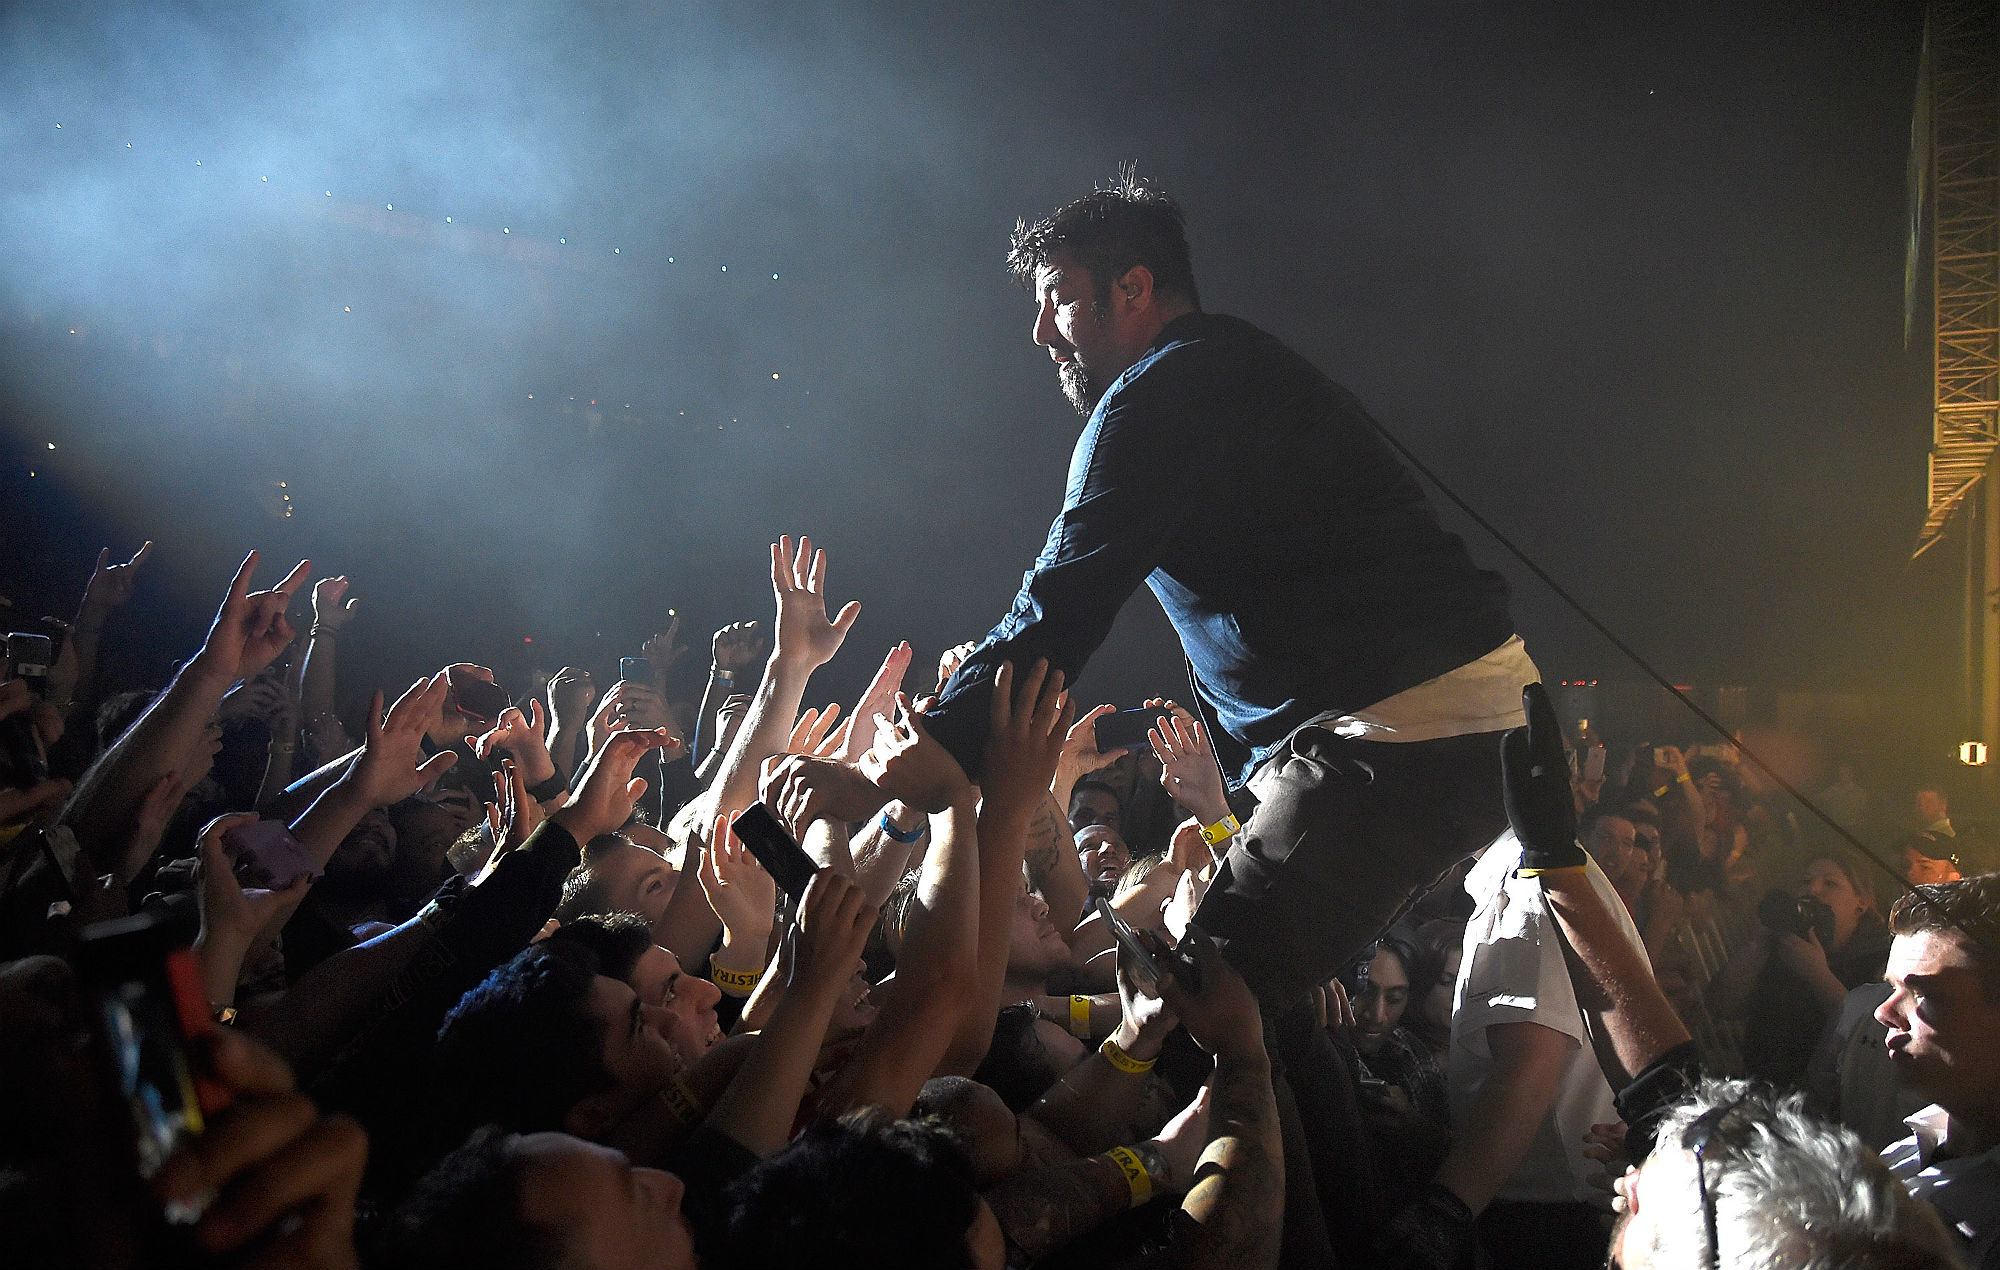 Deftones' Chino Moreno. Credit: Kevin Mazur/Getty Images